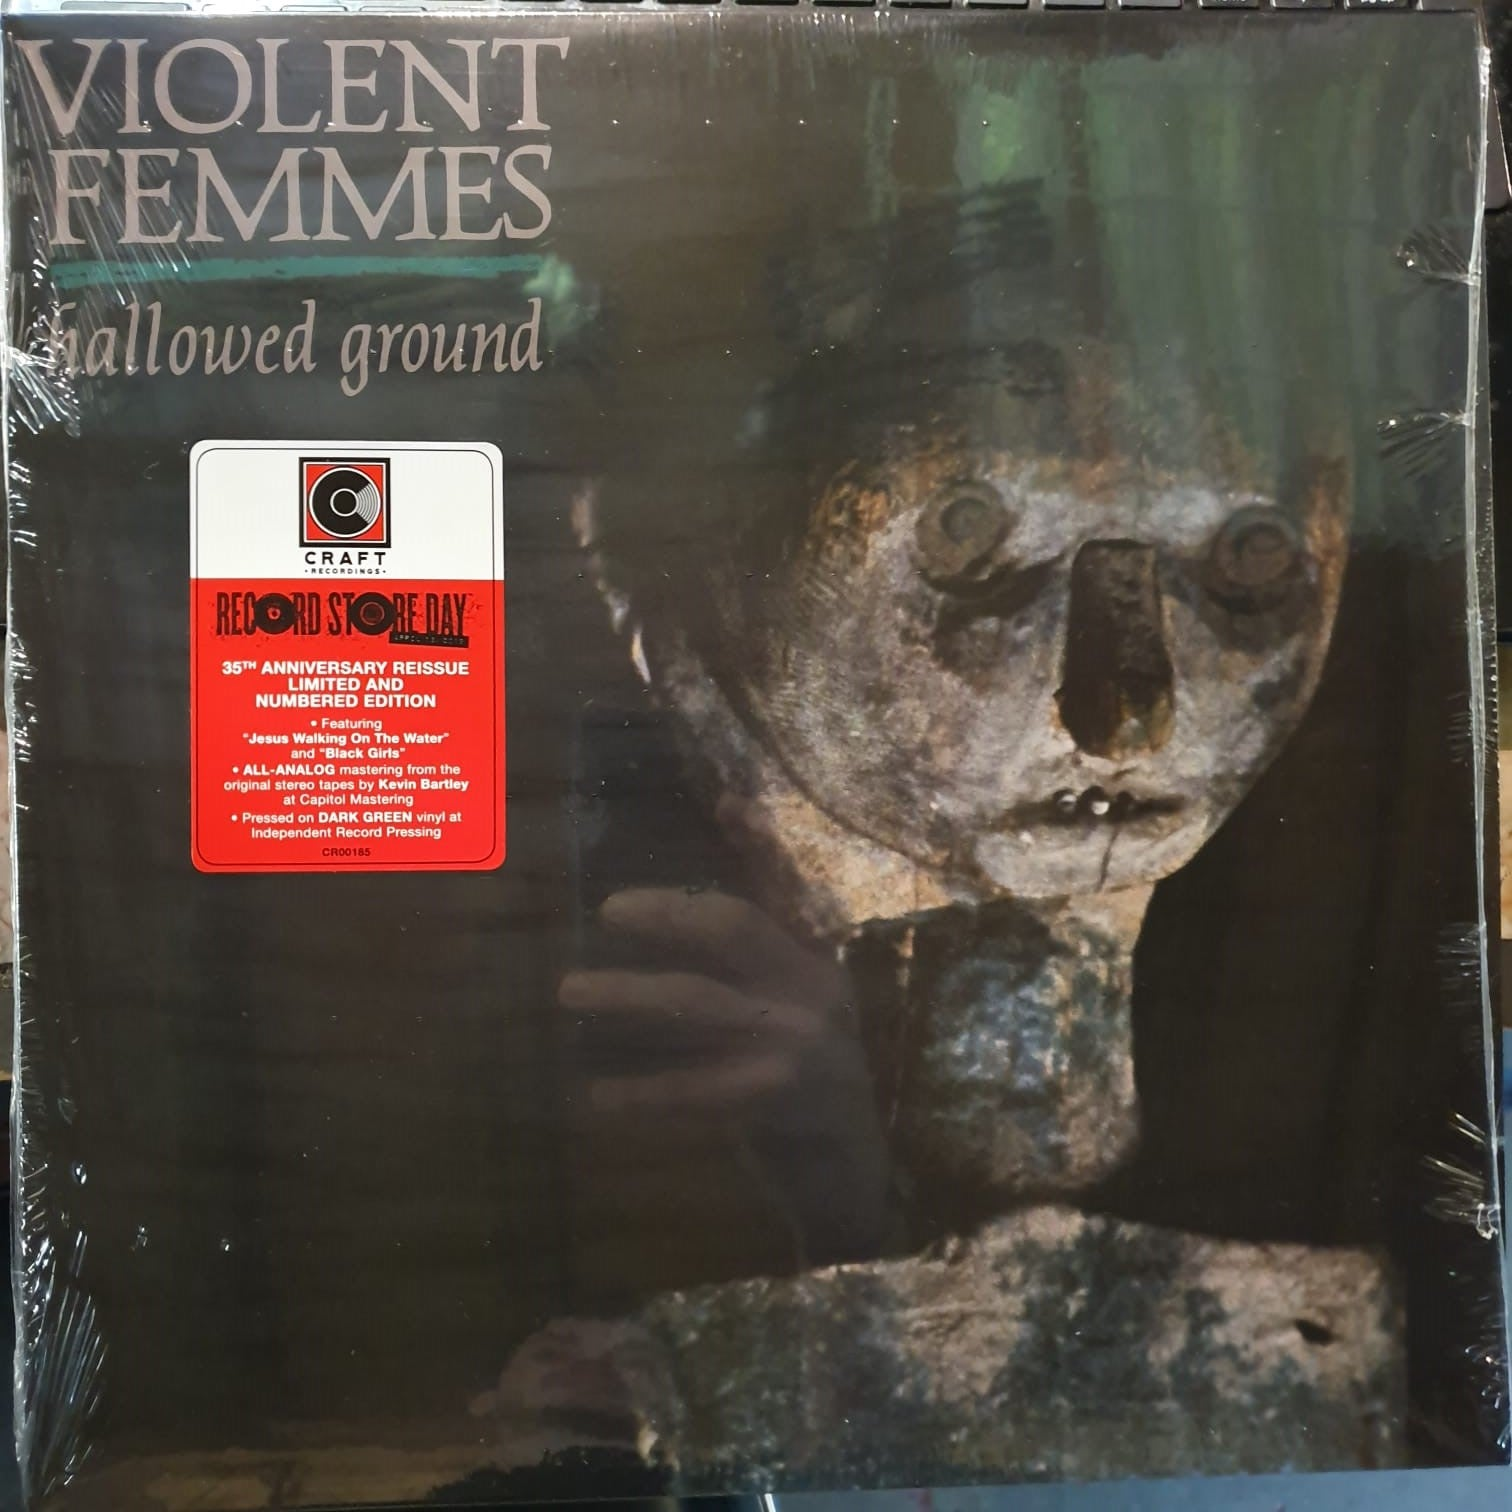 NEW - Violent Femmes, Hallowed Ground LP